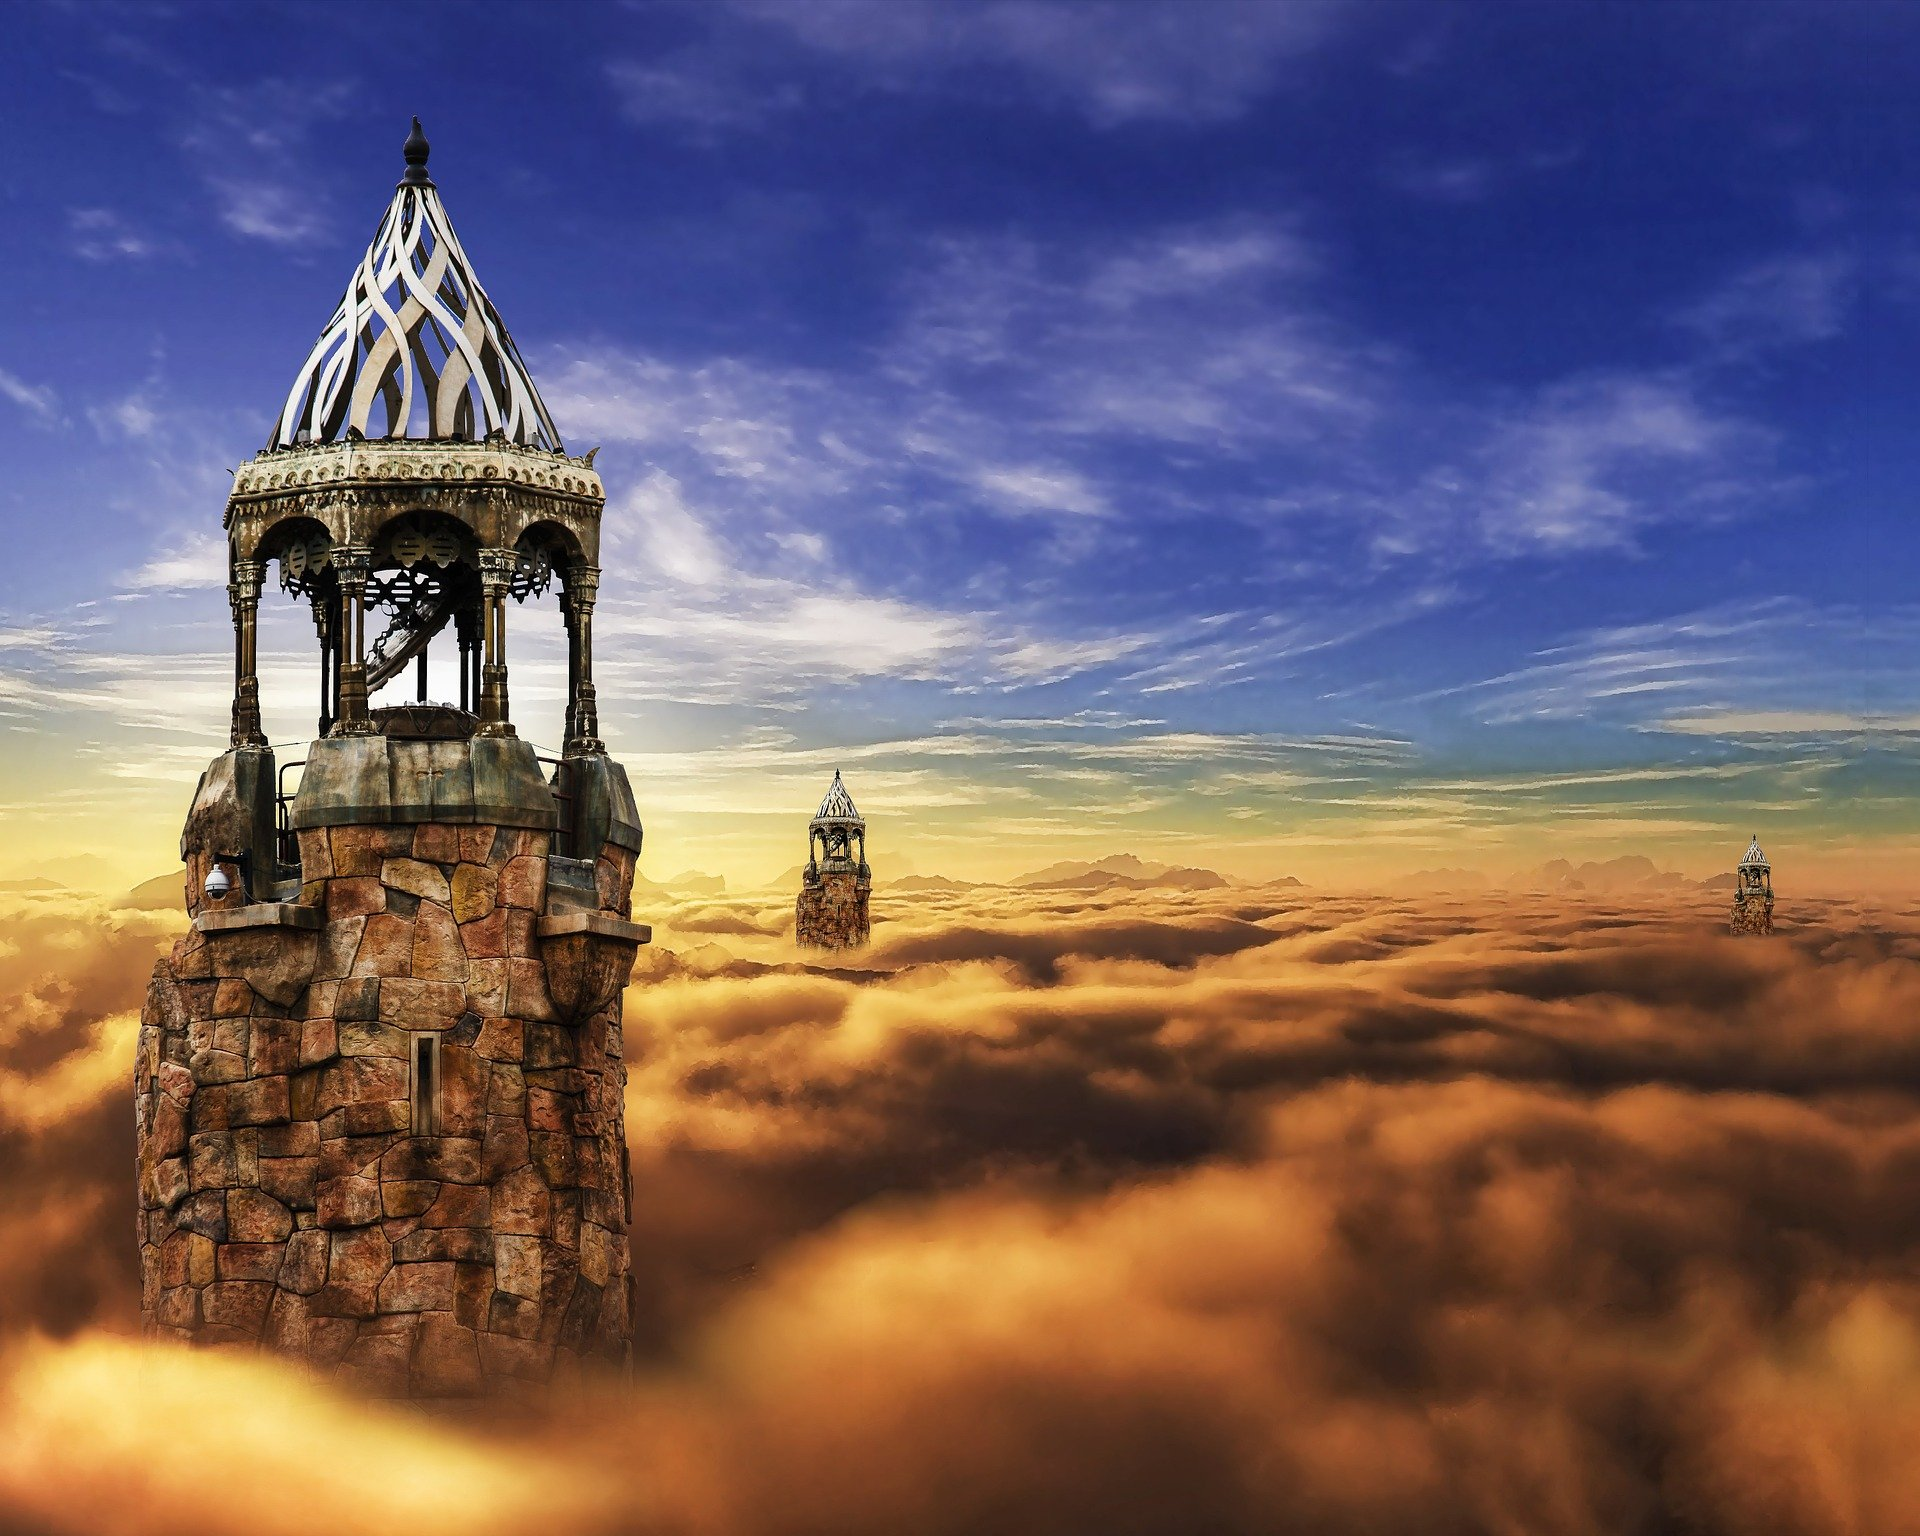 Fantasy landscape with towers